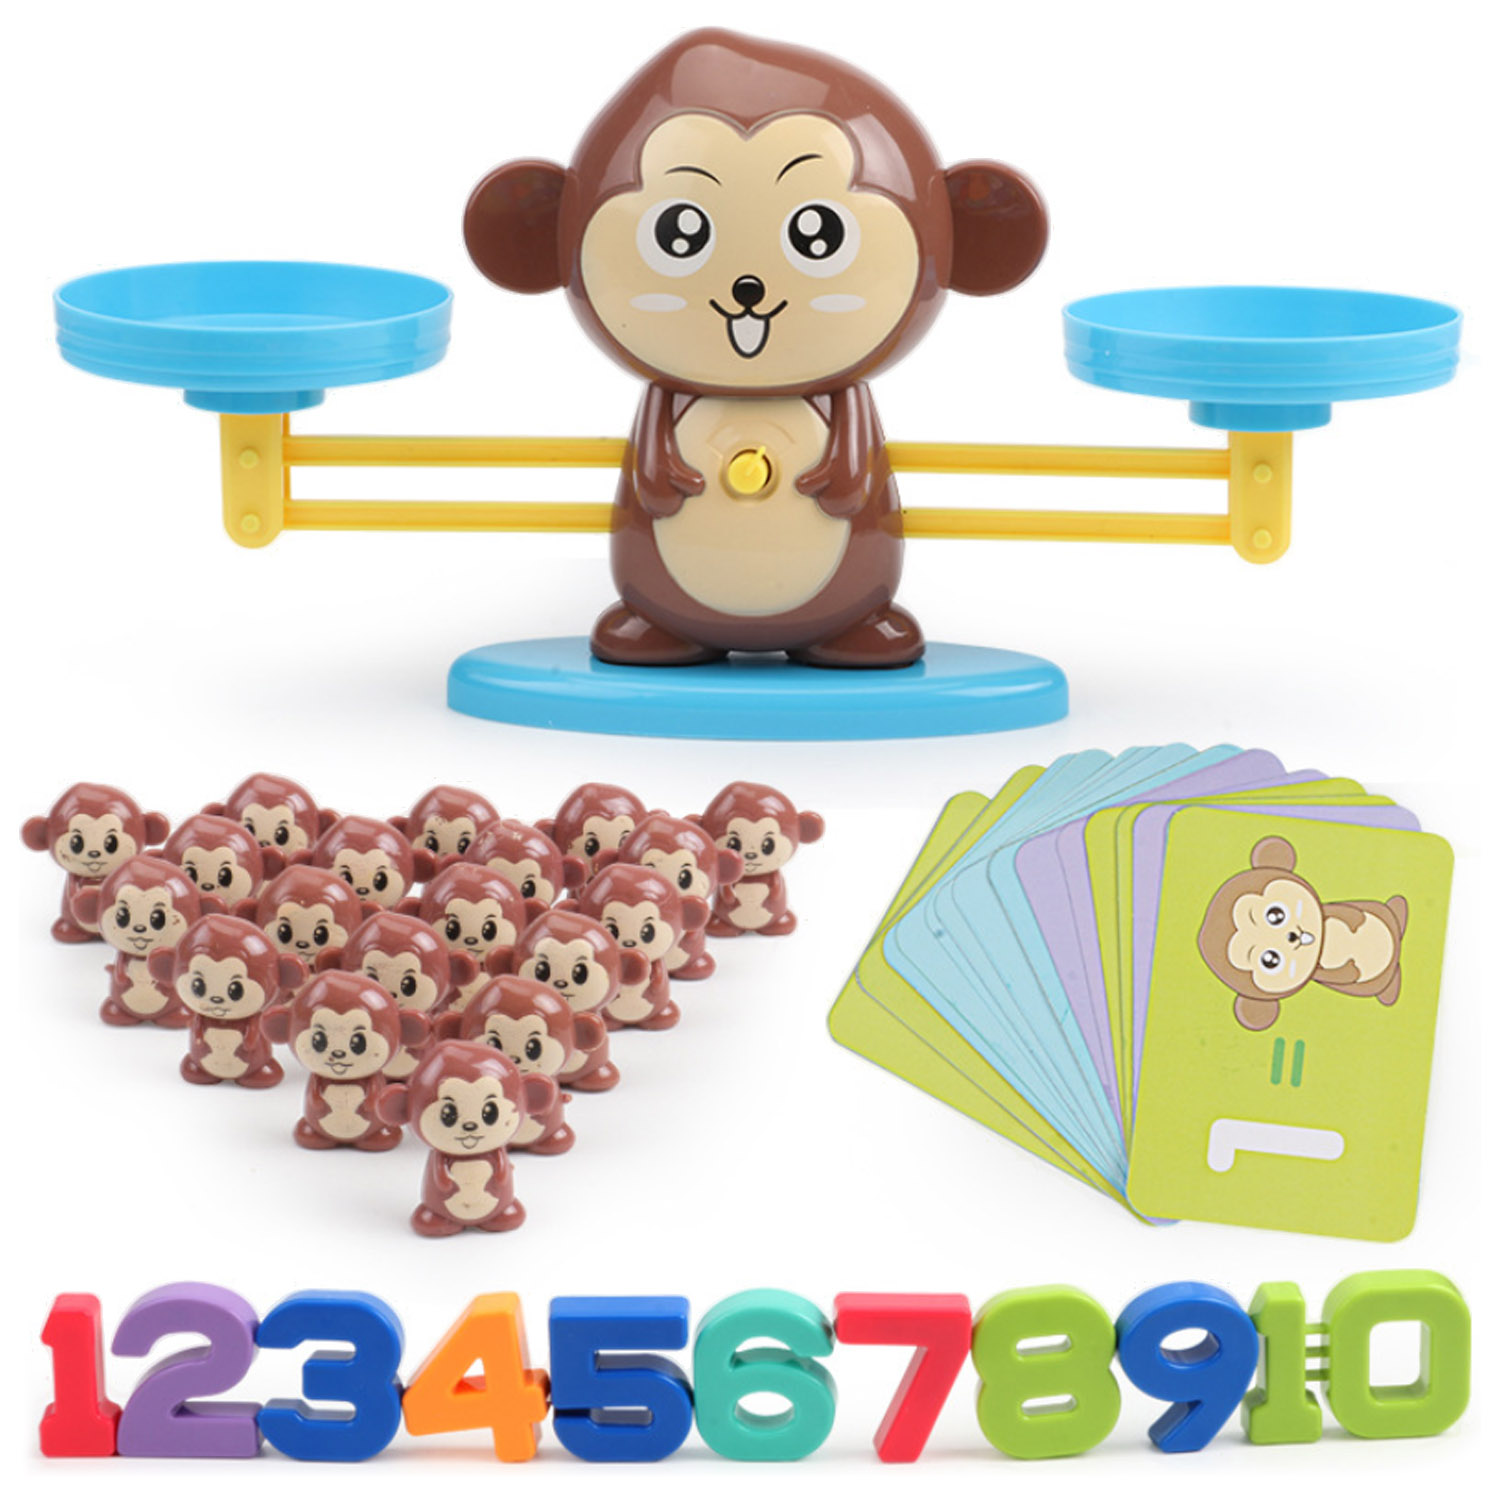 Montessori Math Balance Scale Number Board Game Math Game Learn Add And Subtract Material For Kid Early Educational Counting Toy